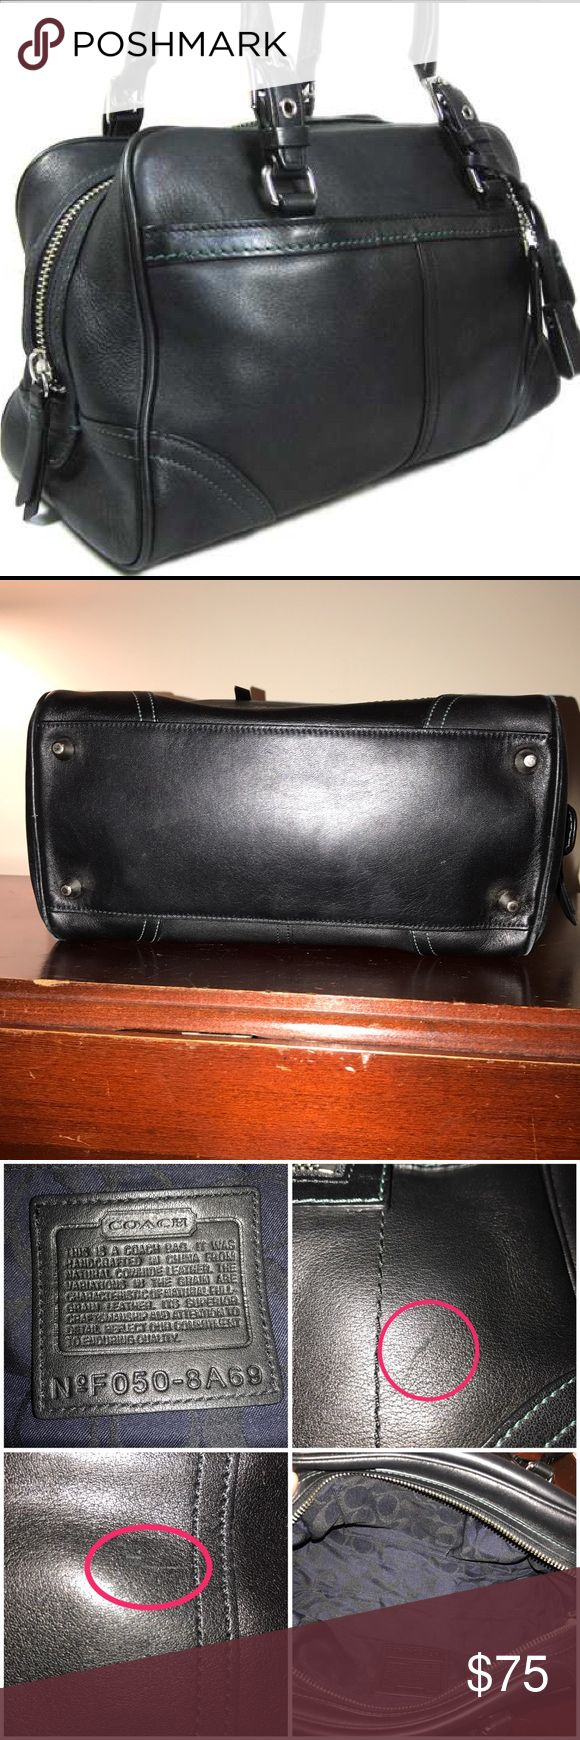 """Coach Boston Black Satchel Gently used Coach satchel in black leather with teal stitching. Has a couple scruff marks as seen in pictures. Comes with Coach protective bag. Measurements 11"""" x 5"""" x 7"""". Coach Bags Satchels"""